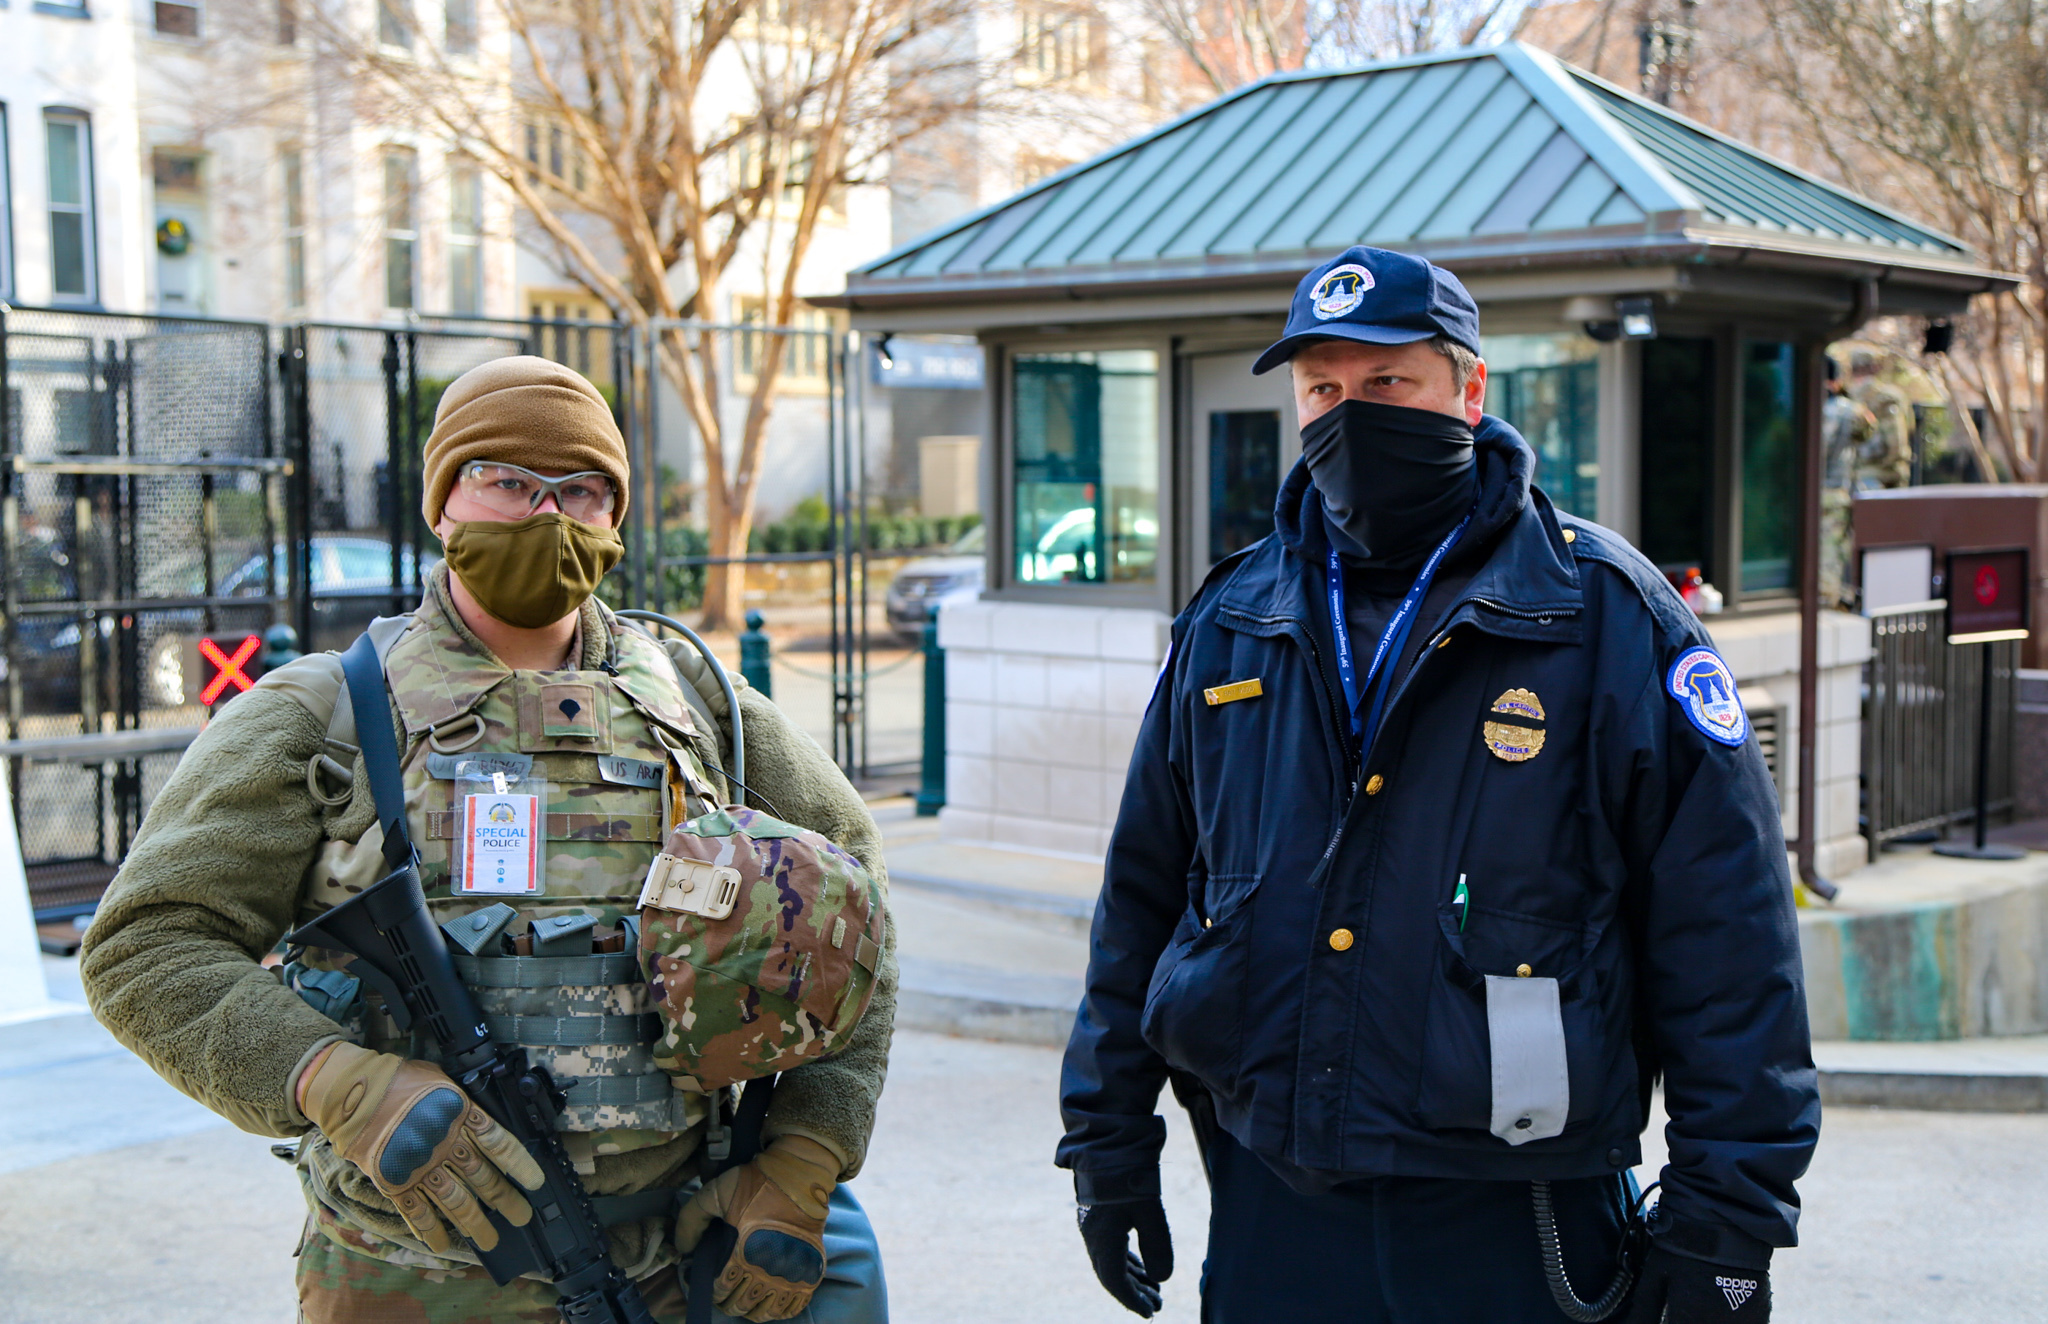 U.S. Soldier with the Utah National Guard speaks with capital police while working together in Washington D.C., Jan. 18, 2021 At least 25,000 National Guard men and women have been authorized to conduct security, communication and logistical missions in support of federal and District authorities leading up and through the 59th Presidential Inauguration. (U.S. Army National Guard photo by Spc. Christopher Hall)